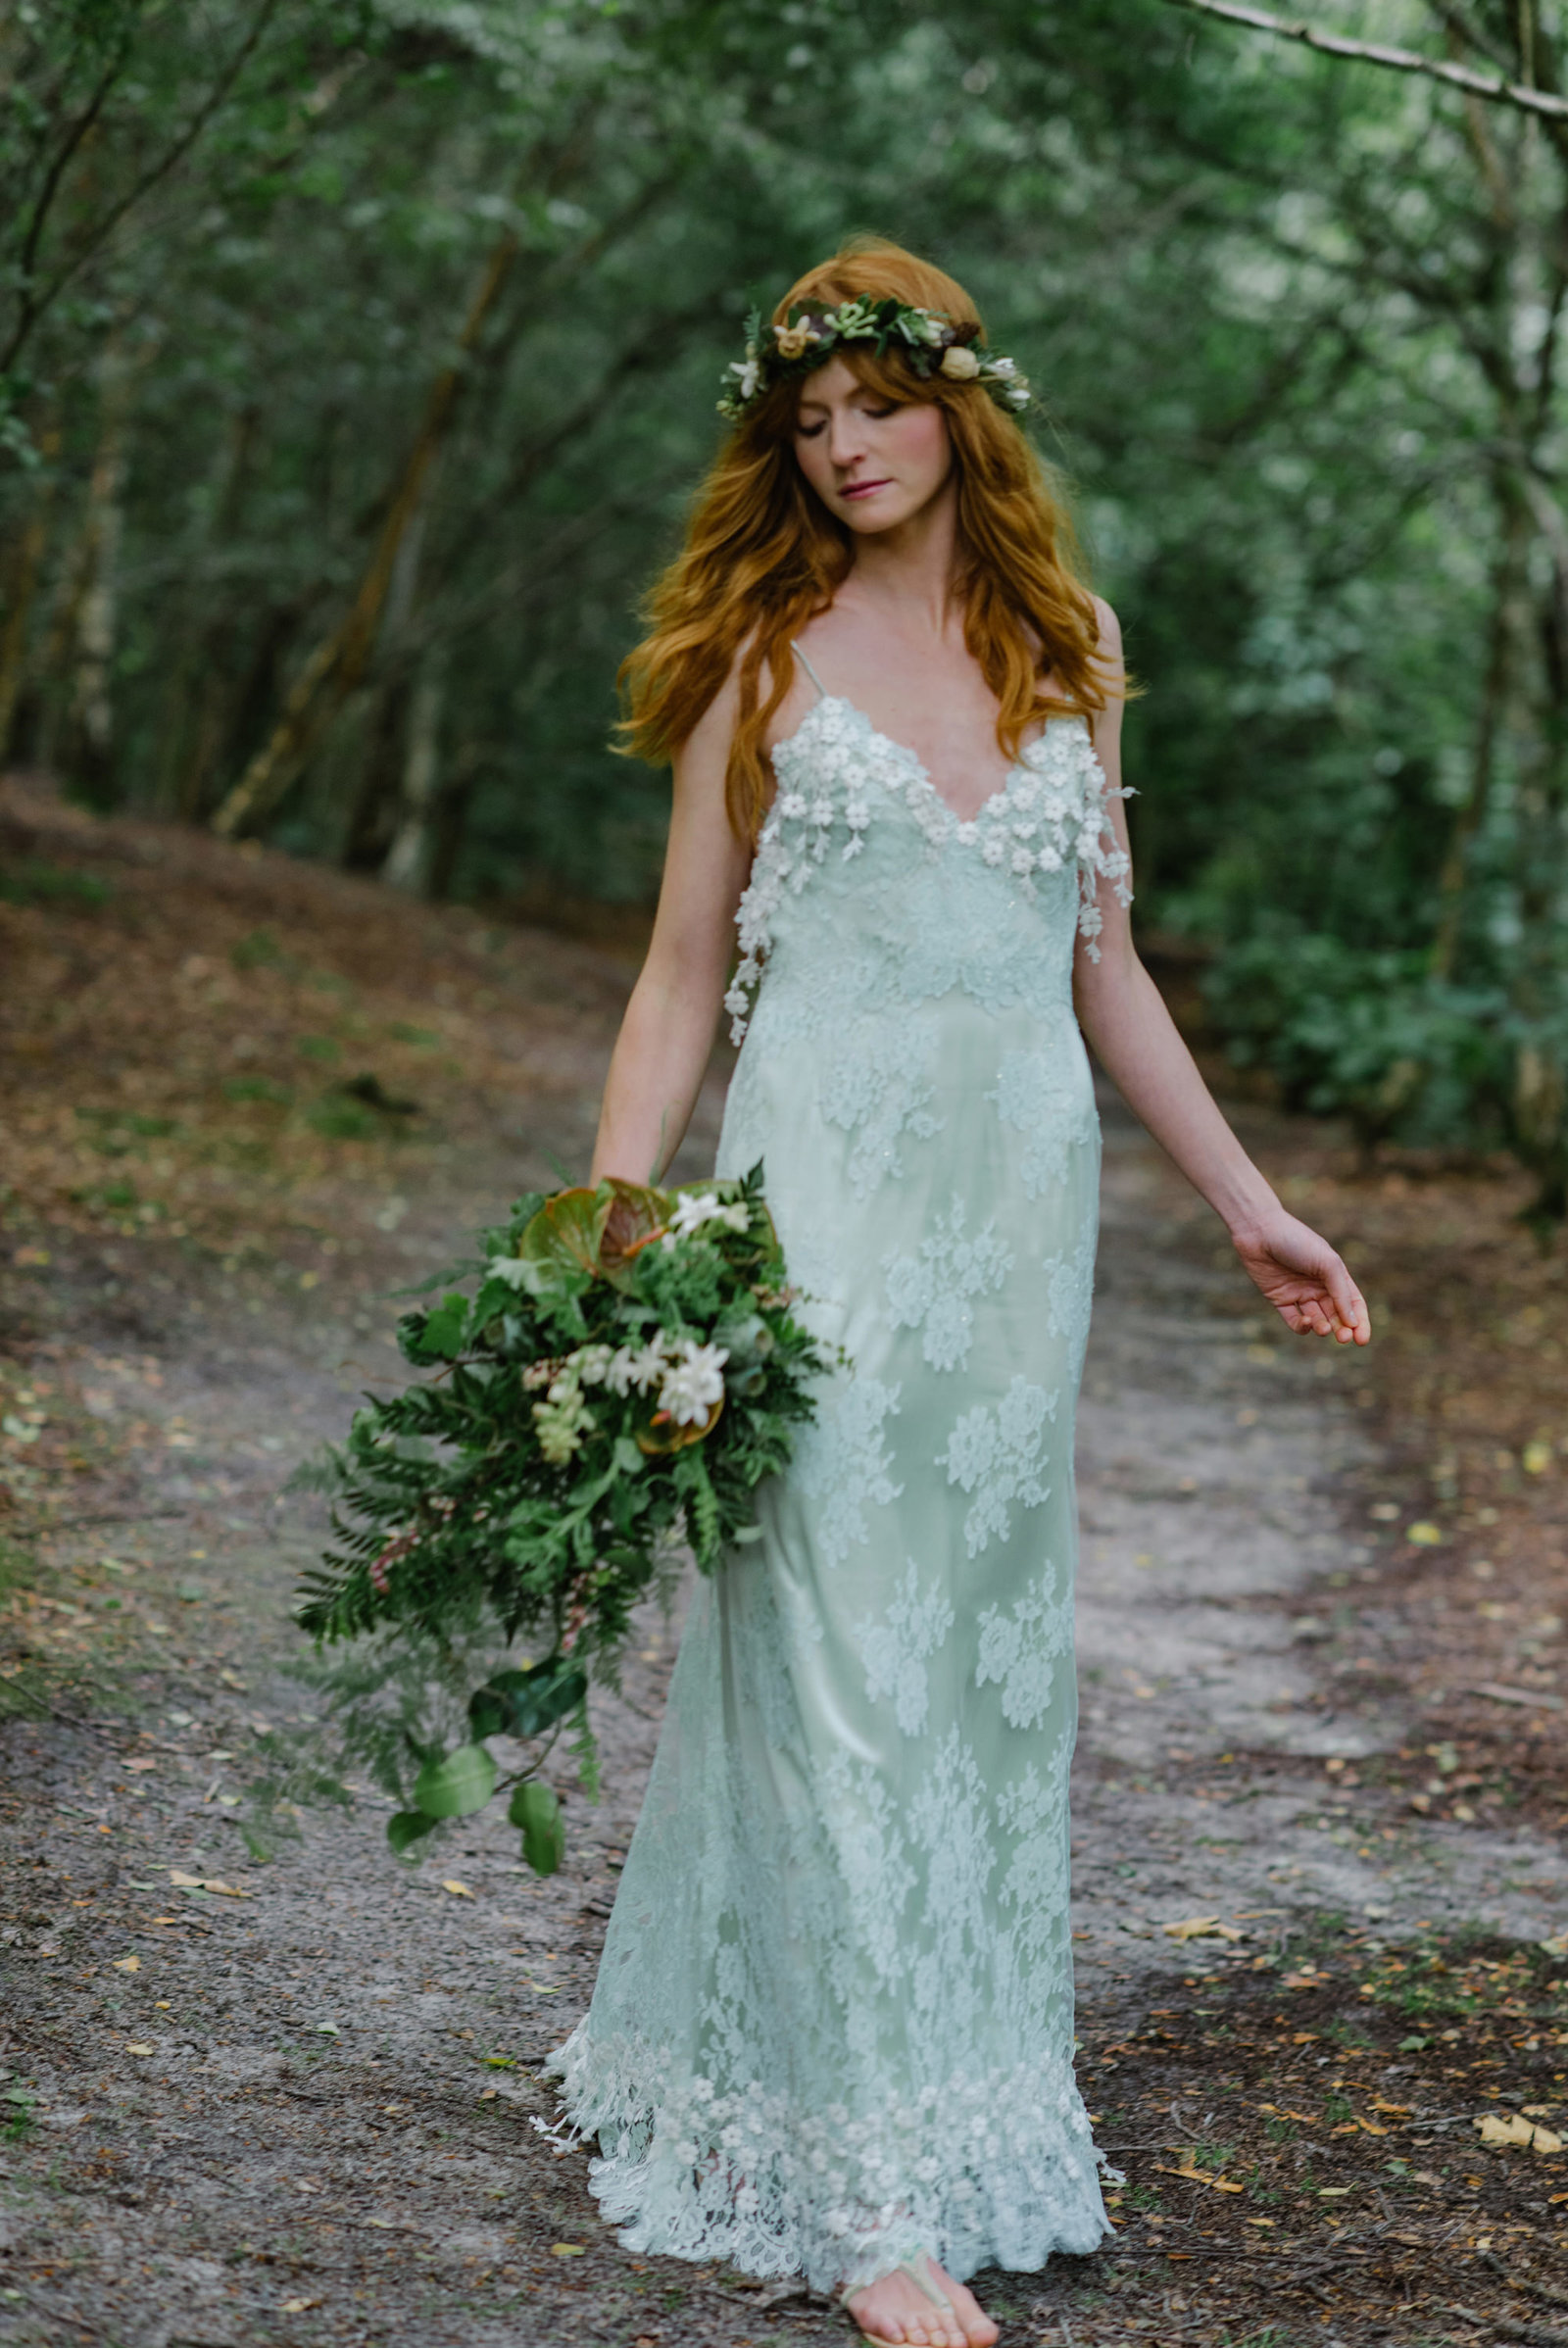 Tennyson_pale_green_lace_silk_low_back_wedding_dress_JoanneFlemingDesign_JMS-(33)web